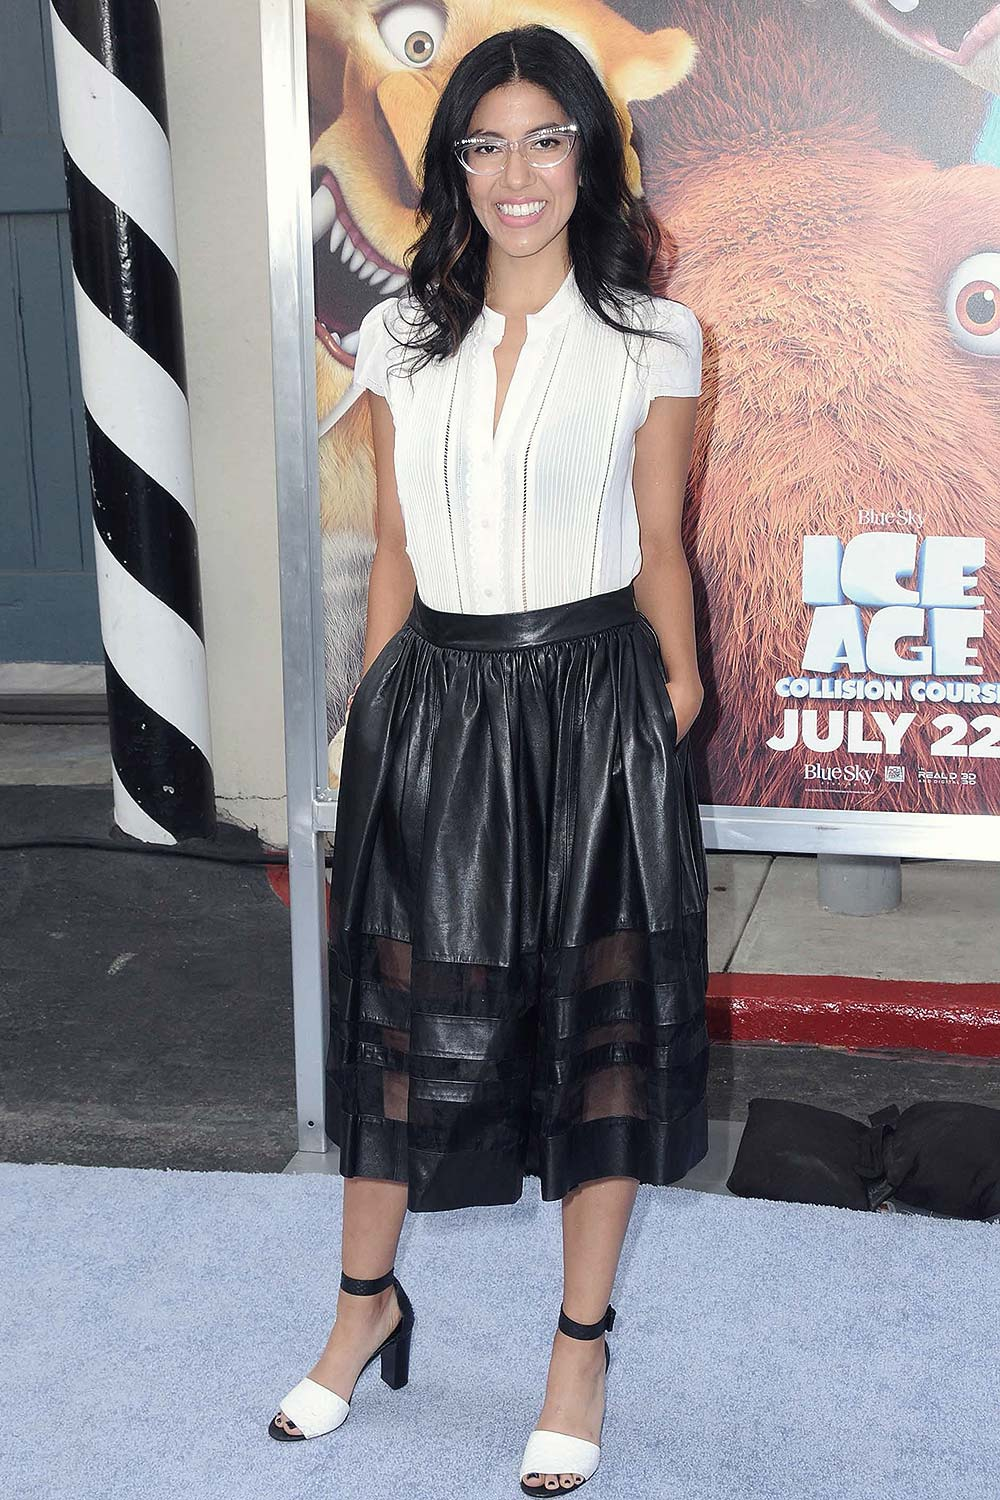 Stephanie Beatriz attends Ice Age Collision Course screening